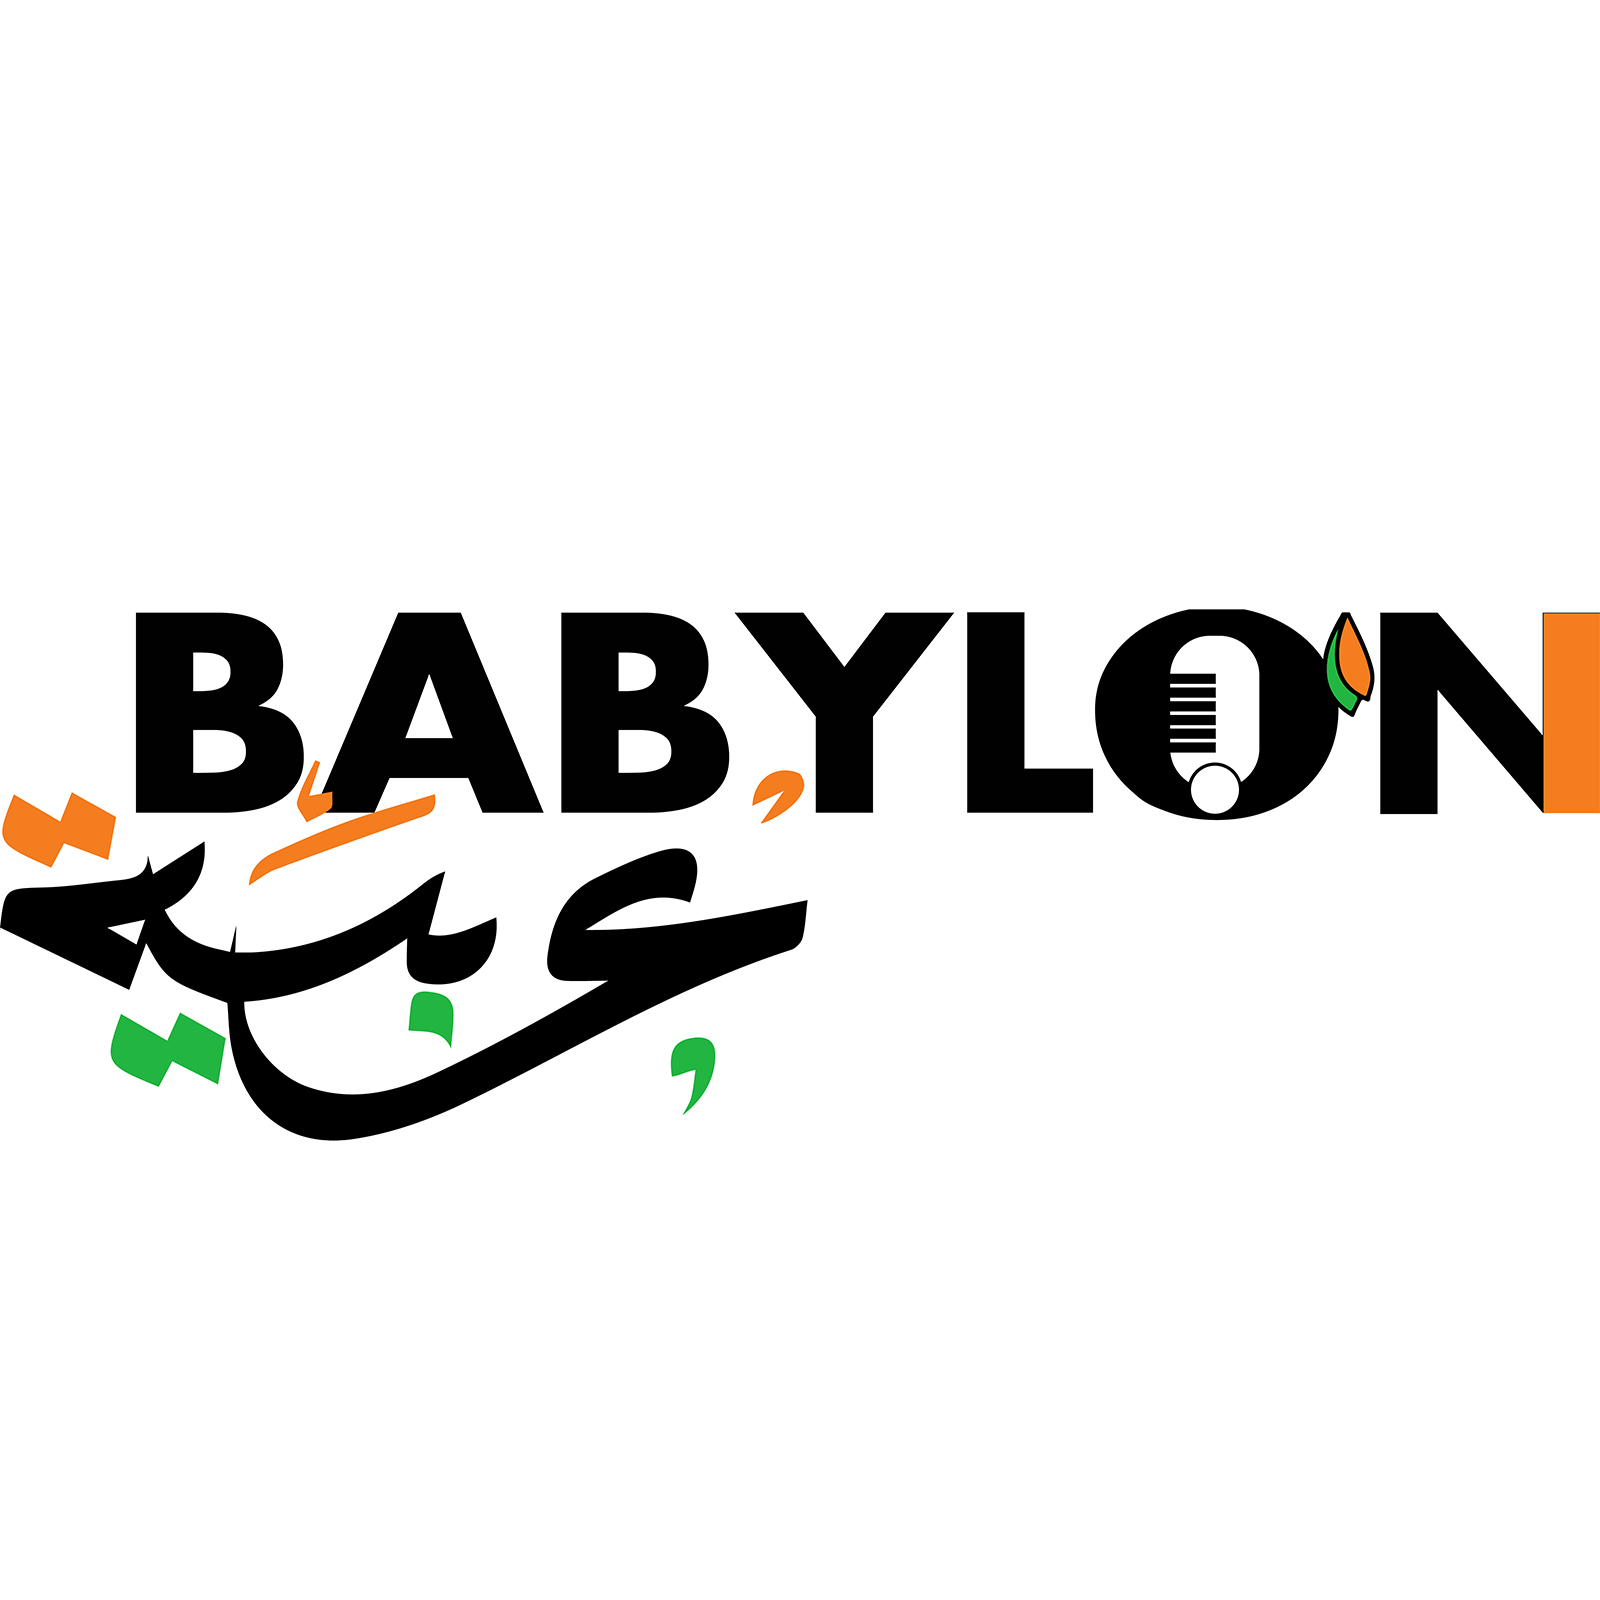 Babylon Arabia